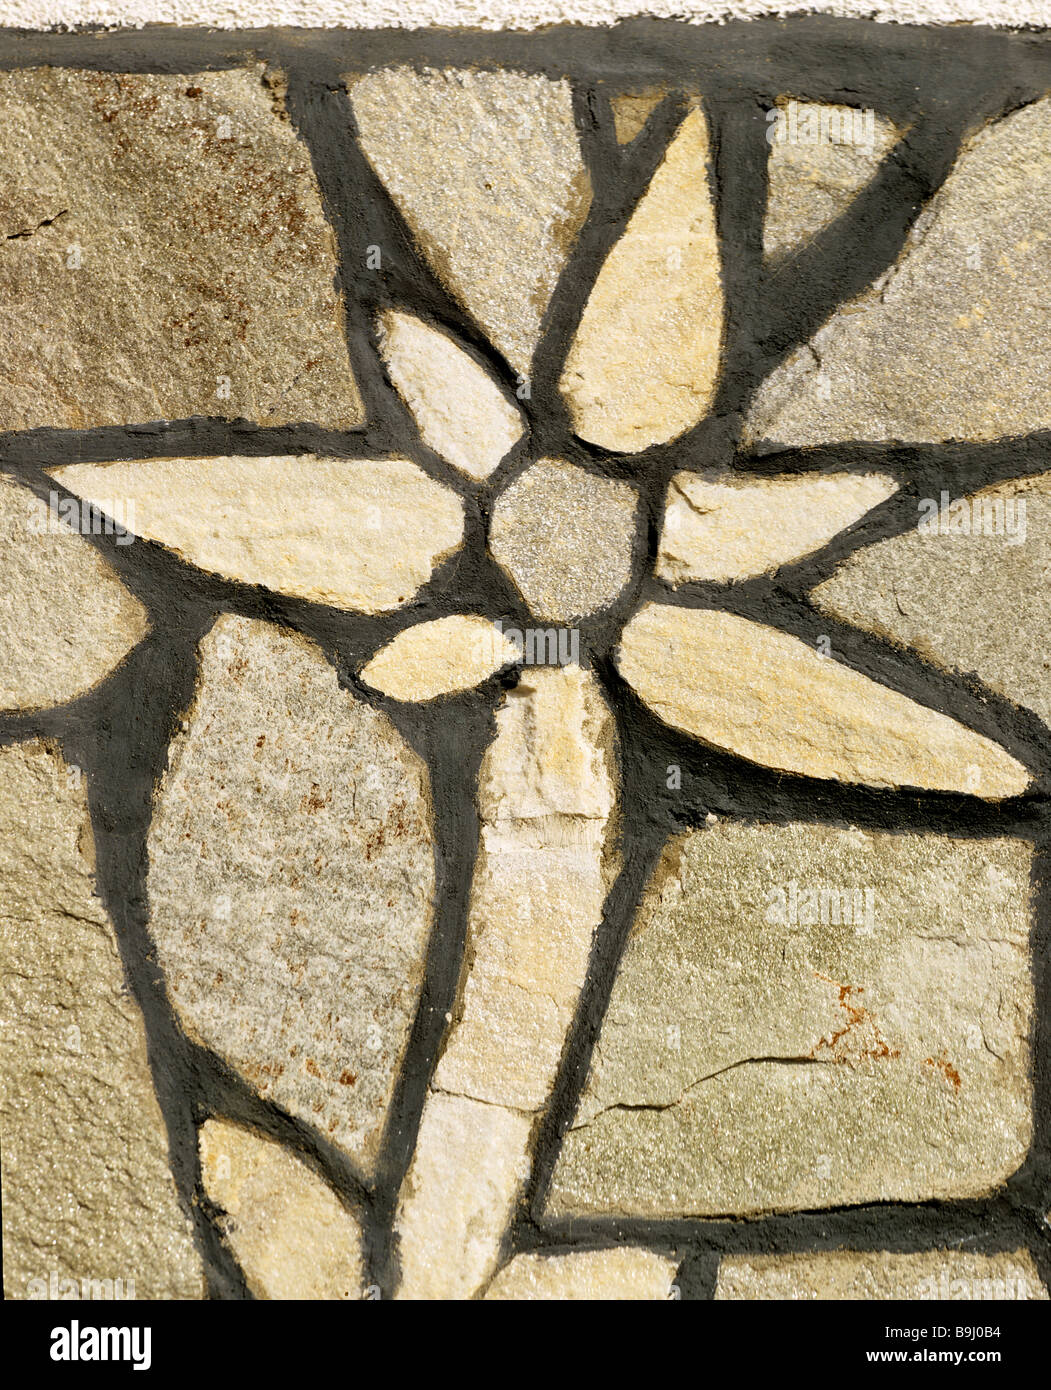 Edelweiss, flower mosaic in stonework - Stock Image